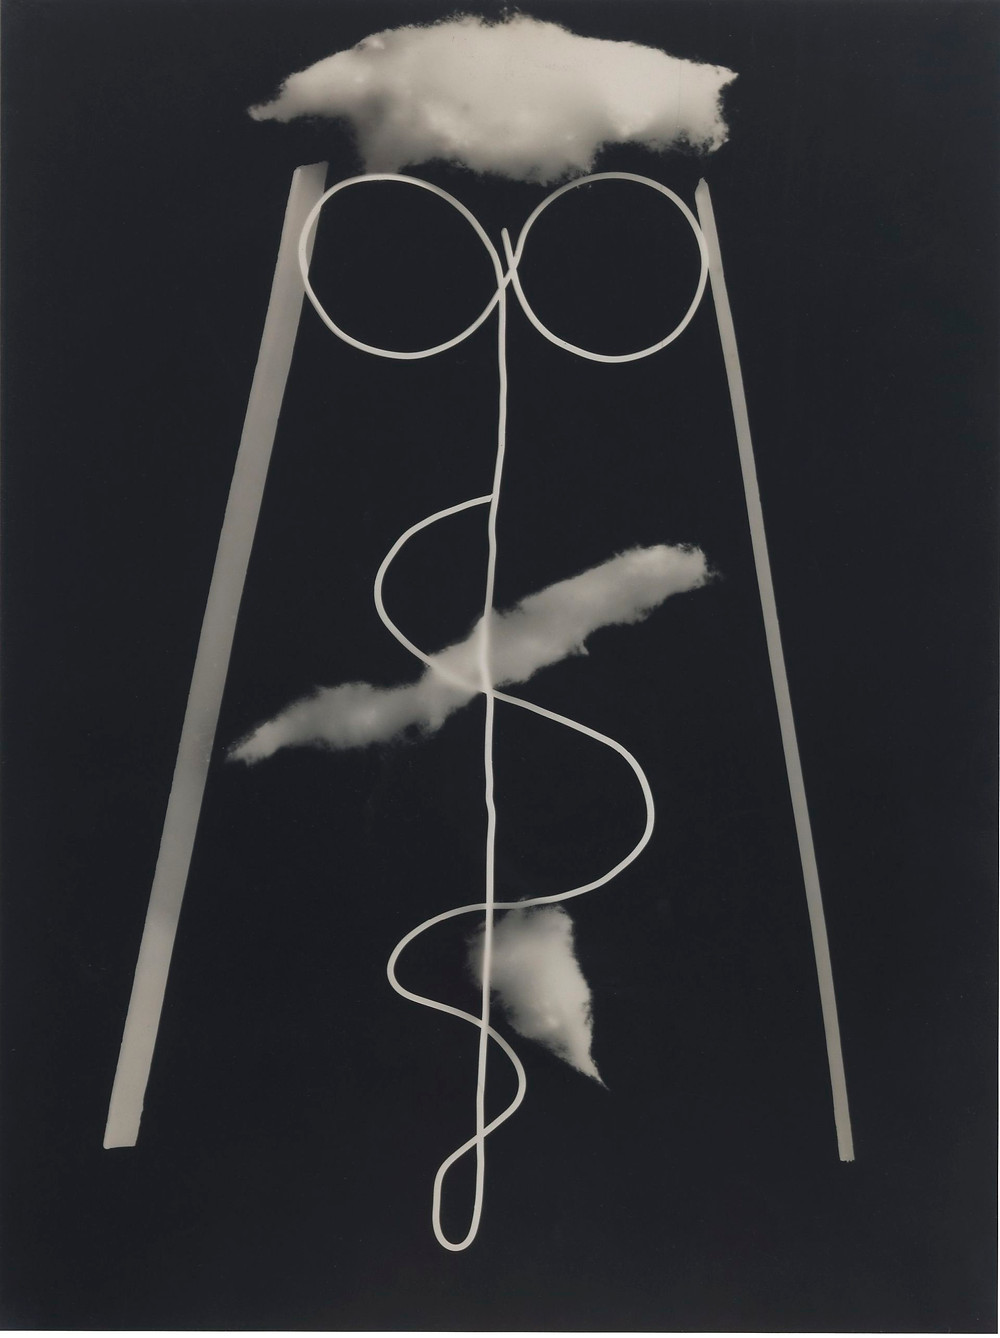 Man Ray, Rayograph, 1928 © Man Ray e MoMA